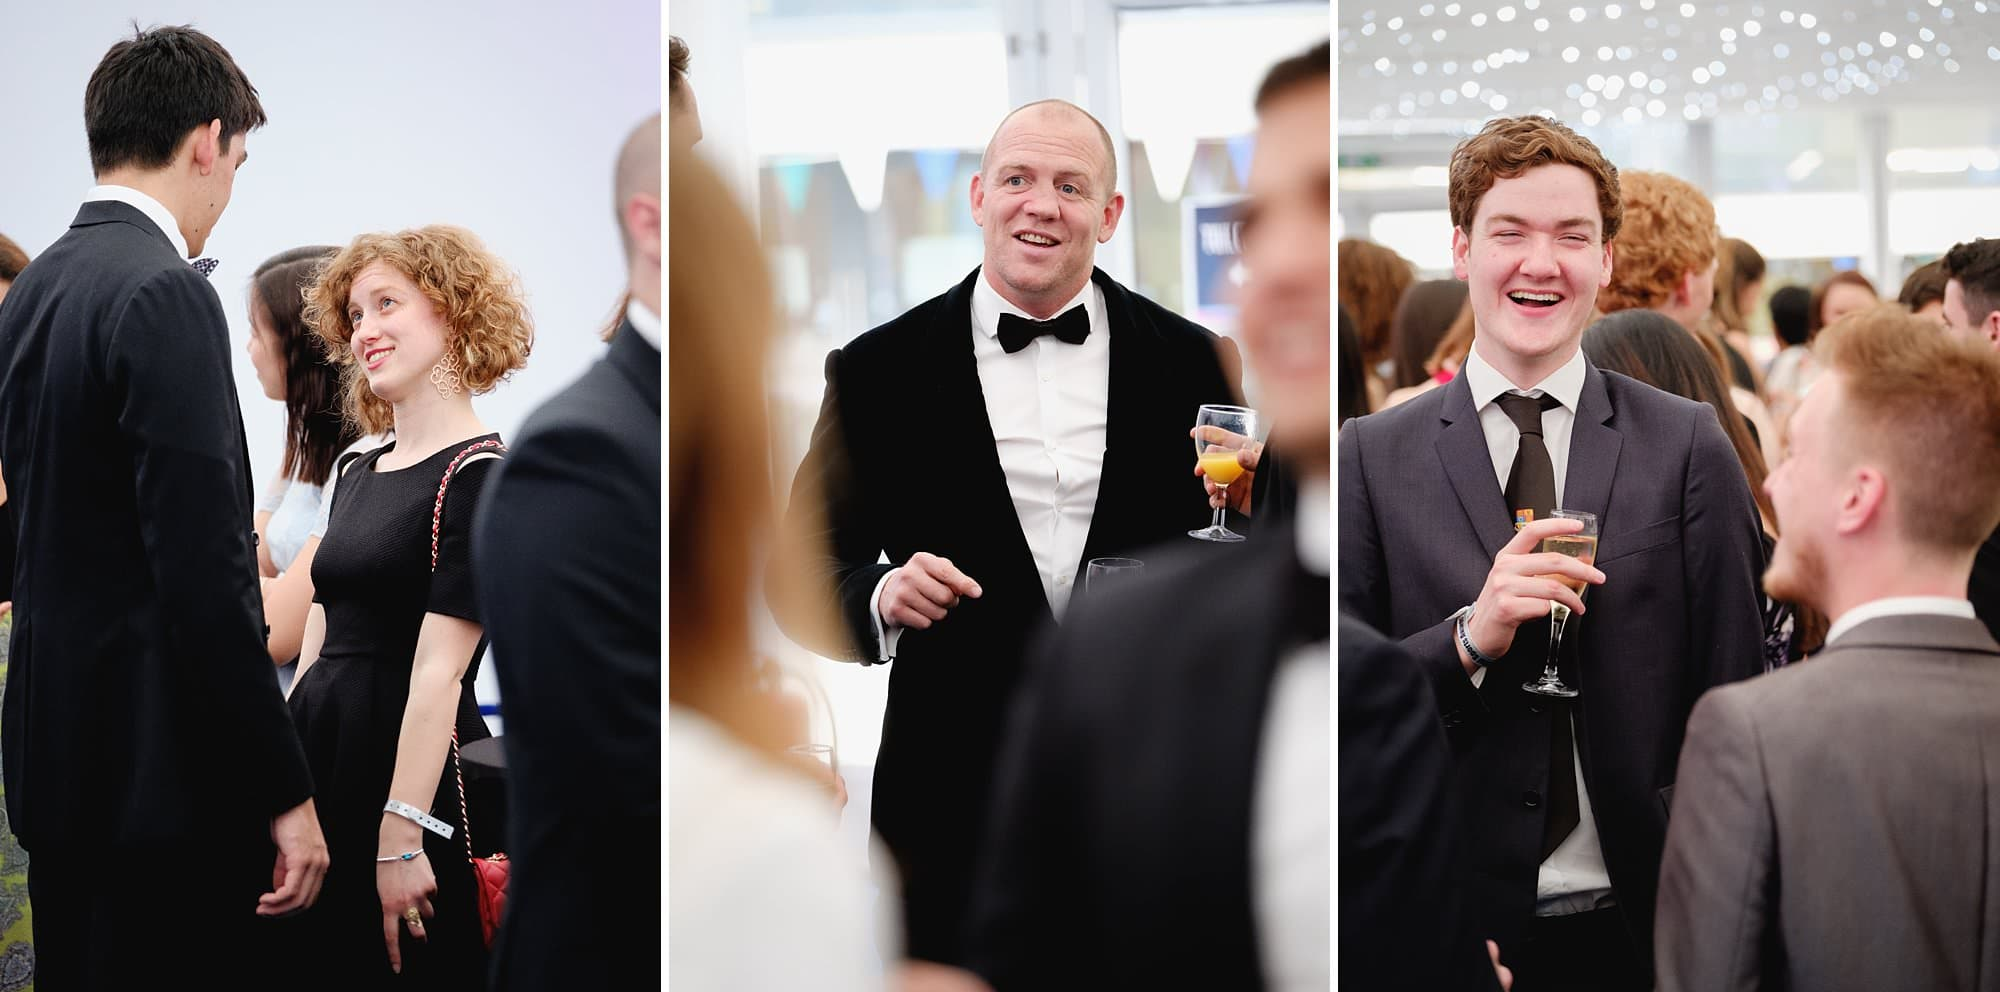 event photographer london icl 2017 007 - Imperial College London Sports Awards 2017